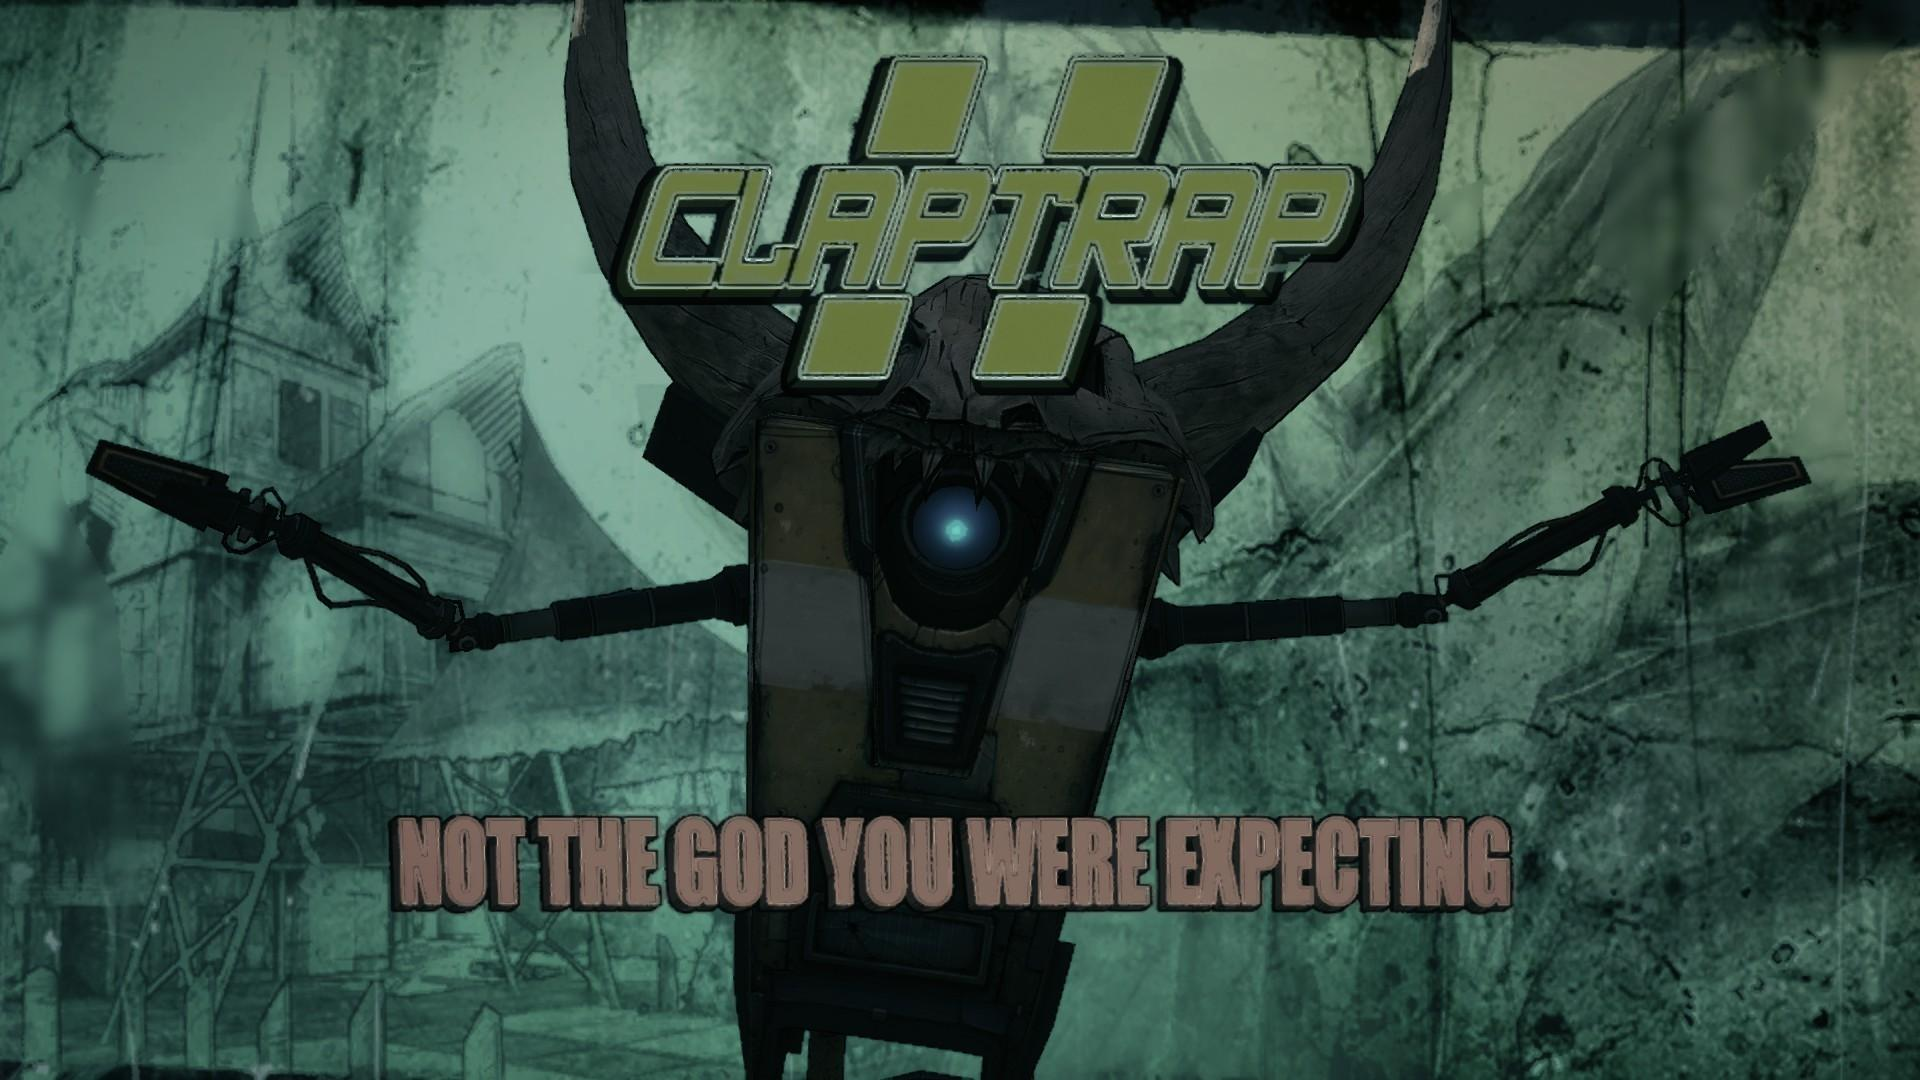 Claptrap borderlands 2 2013 wallpaper 52246 1920x1080